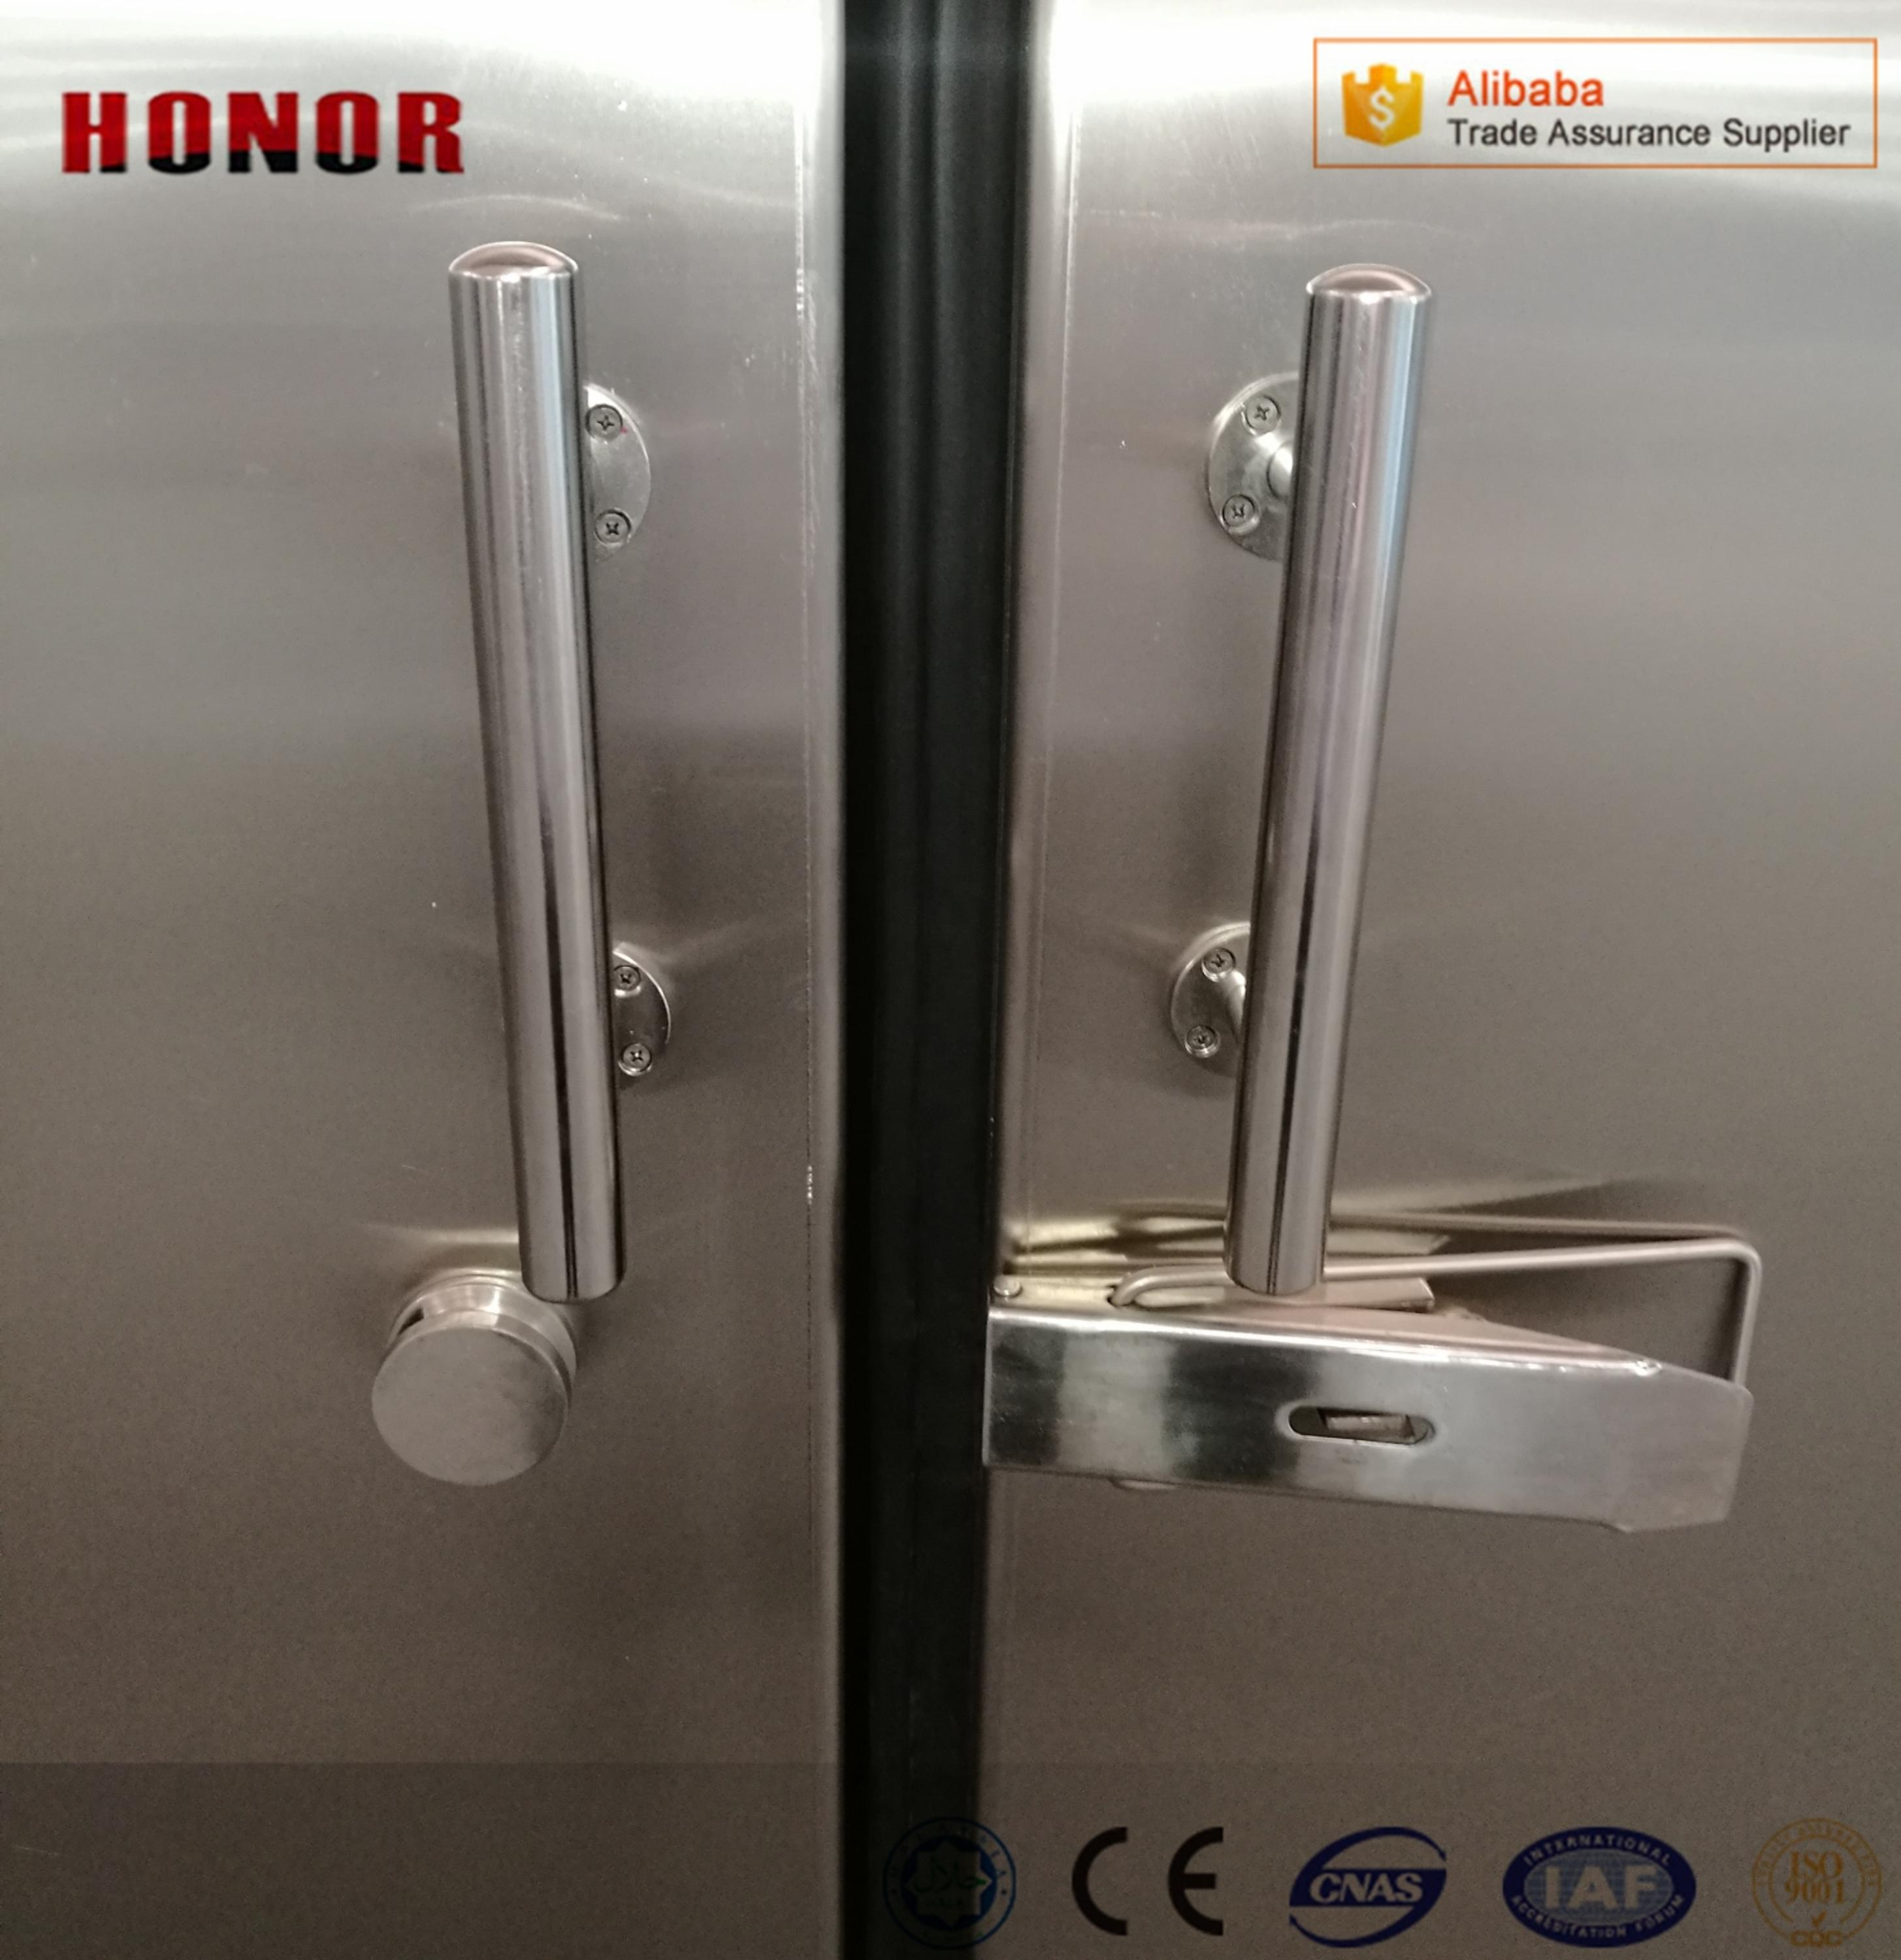 Automatic Sliding Door Automatic Sliding Door Sensor For Cold Room